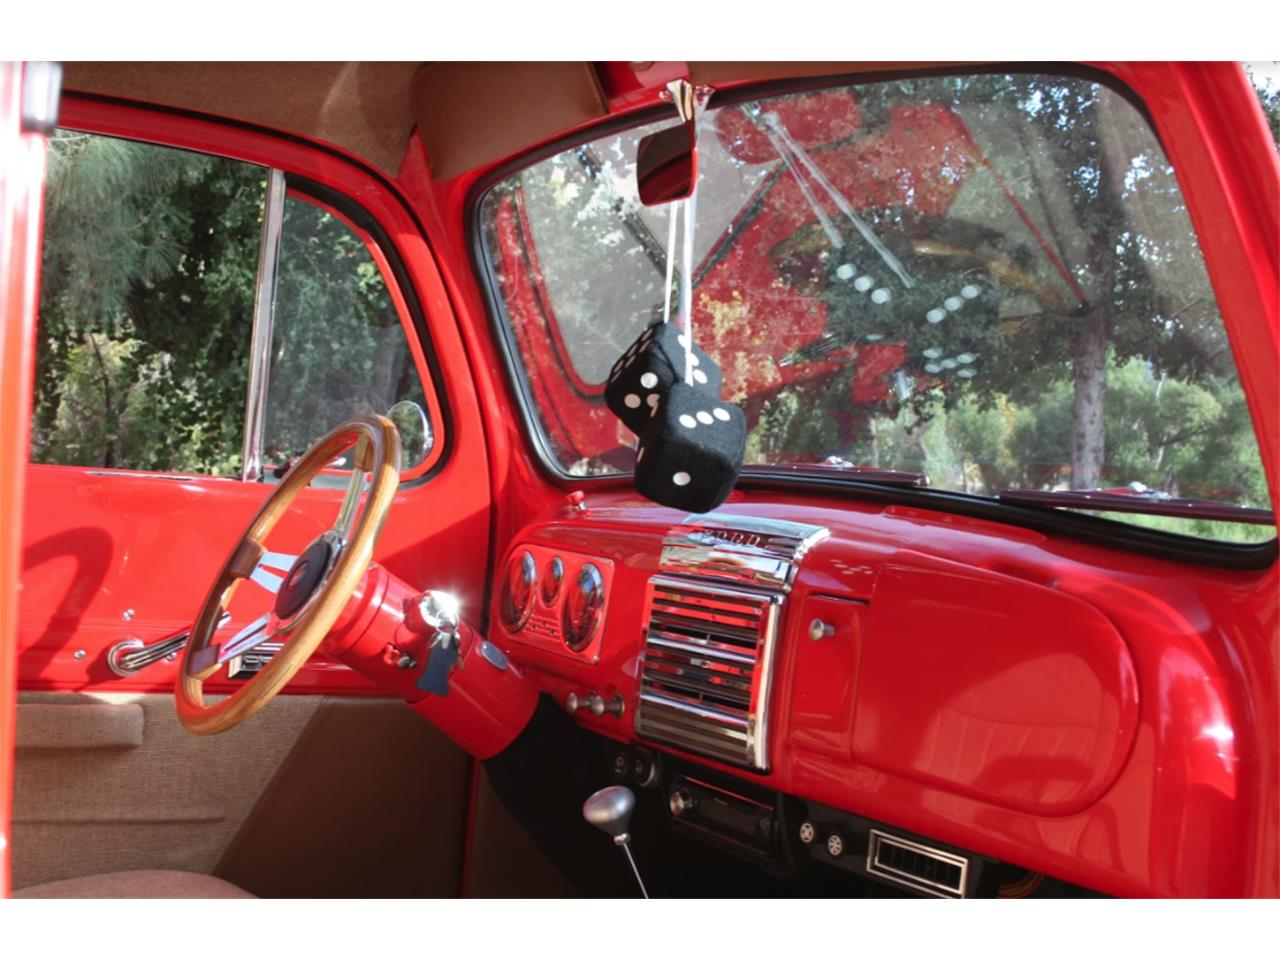 Large Picture of 1950 Ford Pickup located in California - $33,000.00 Offered by a Private Seller - LLLJ